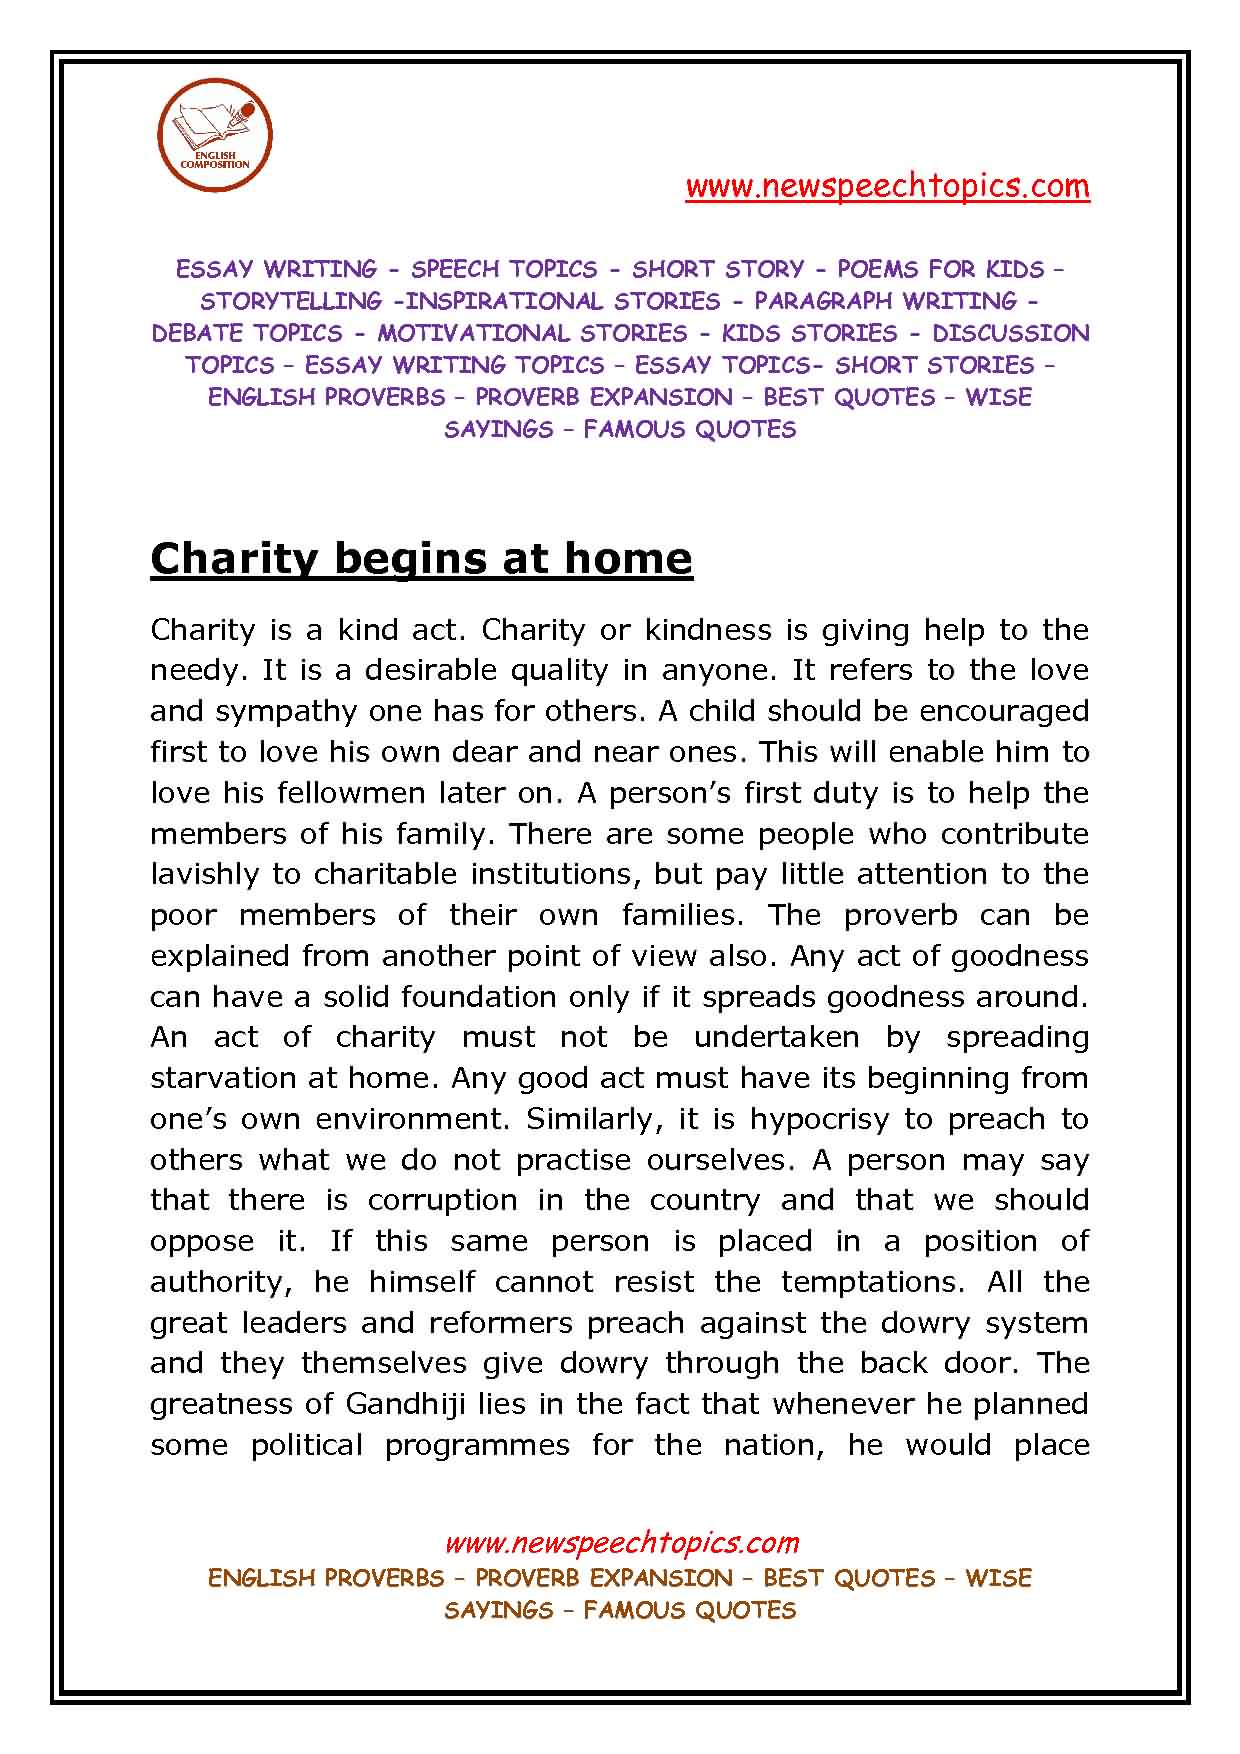 charity quotes ideas images com nice charity quote ~charity begins at home